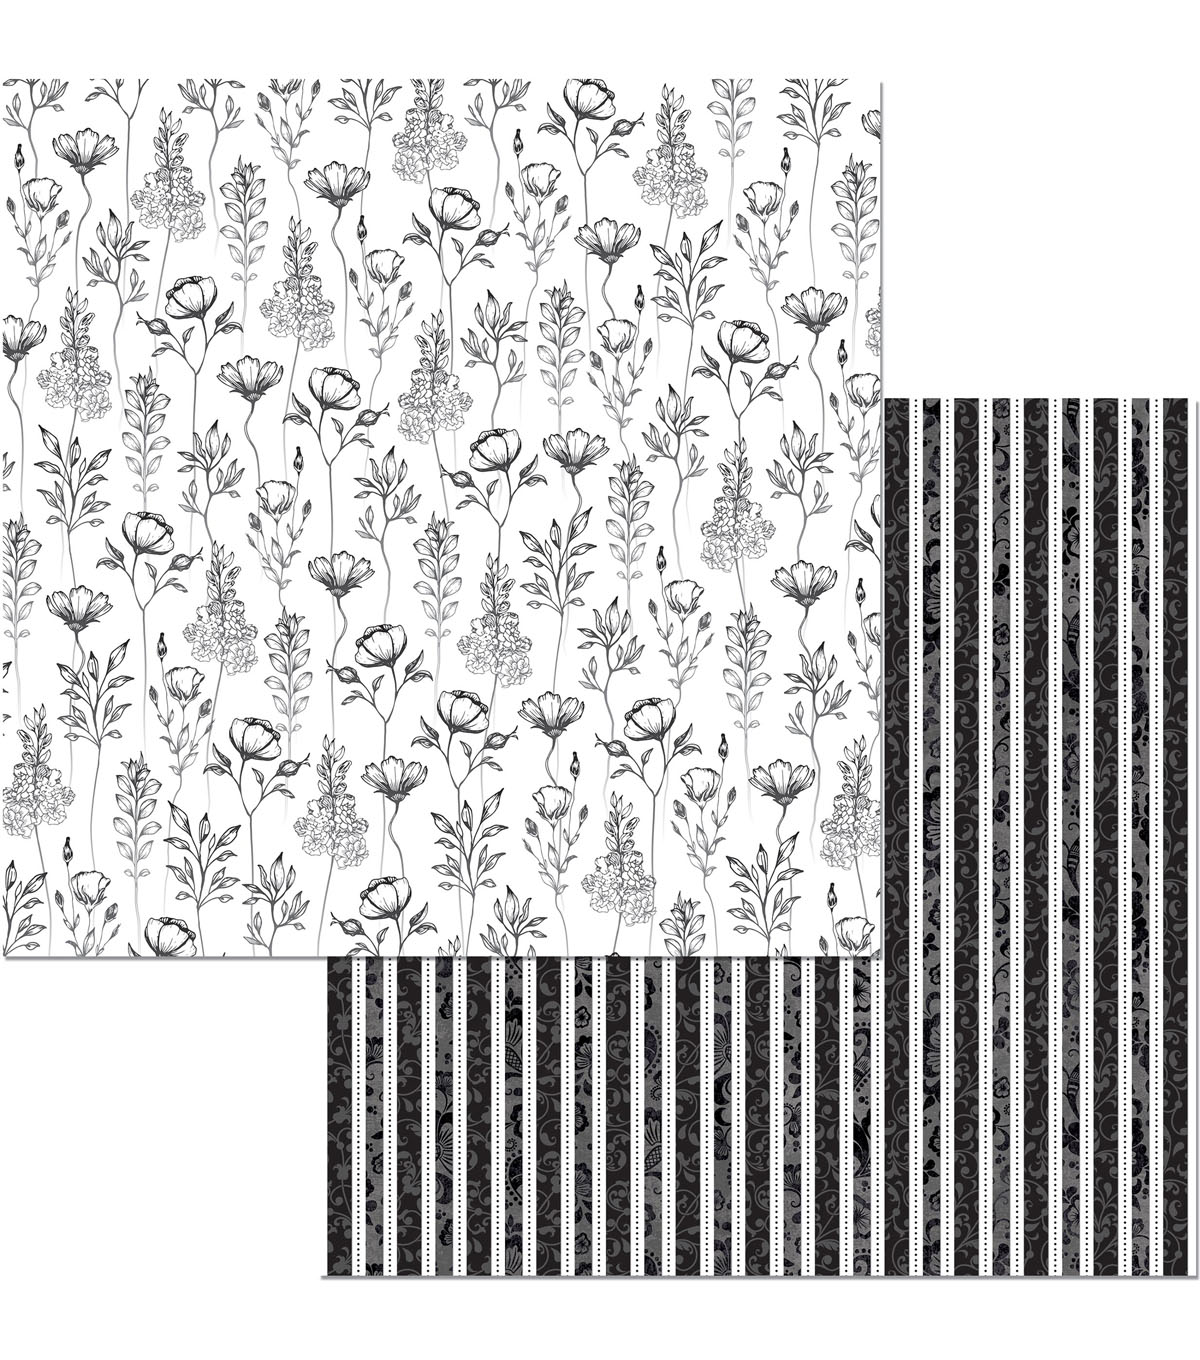 BoBunny Black Tie Affair 25 pk 12\u0027\u0027x12\u0027\u0027 Double-Sided Cardstock-Glamour